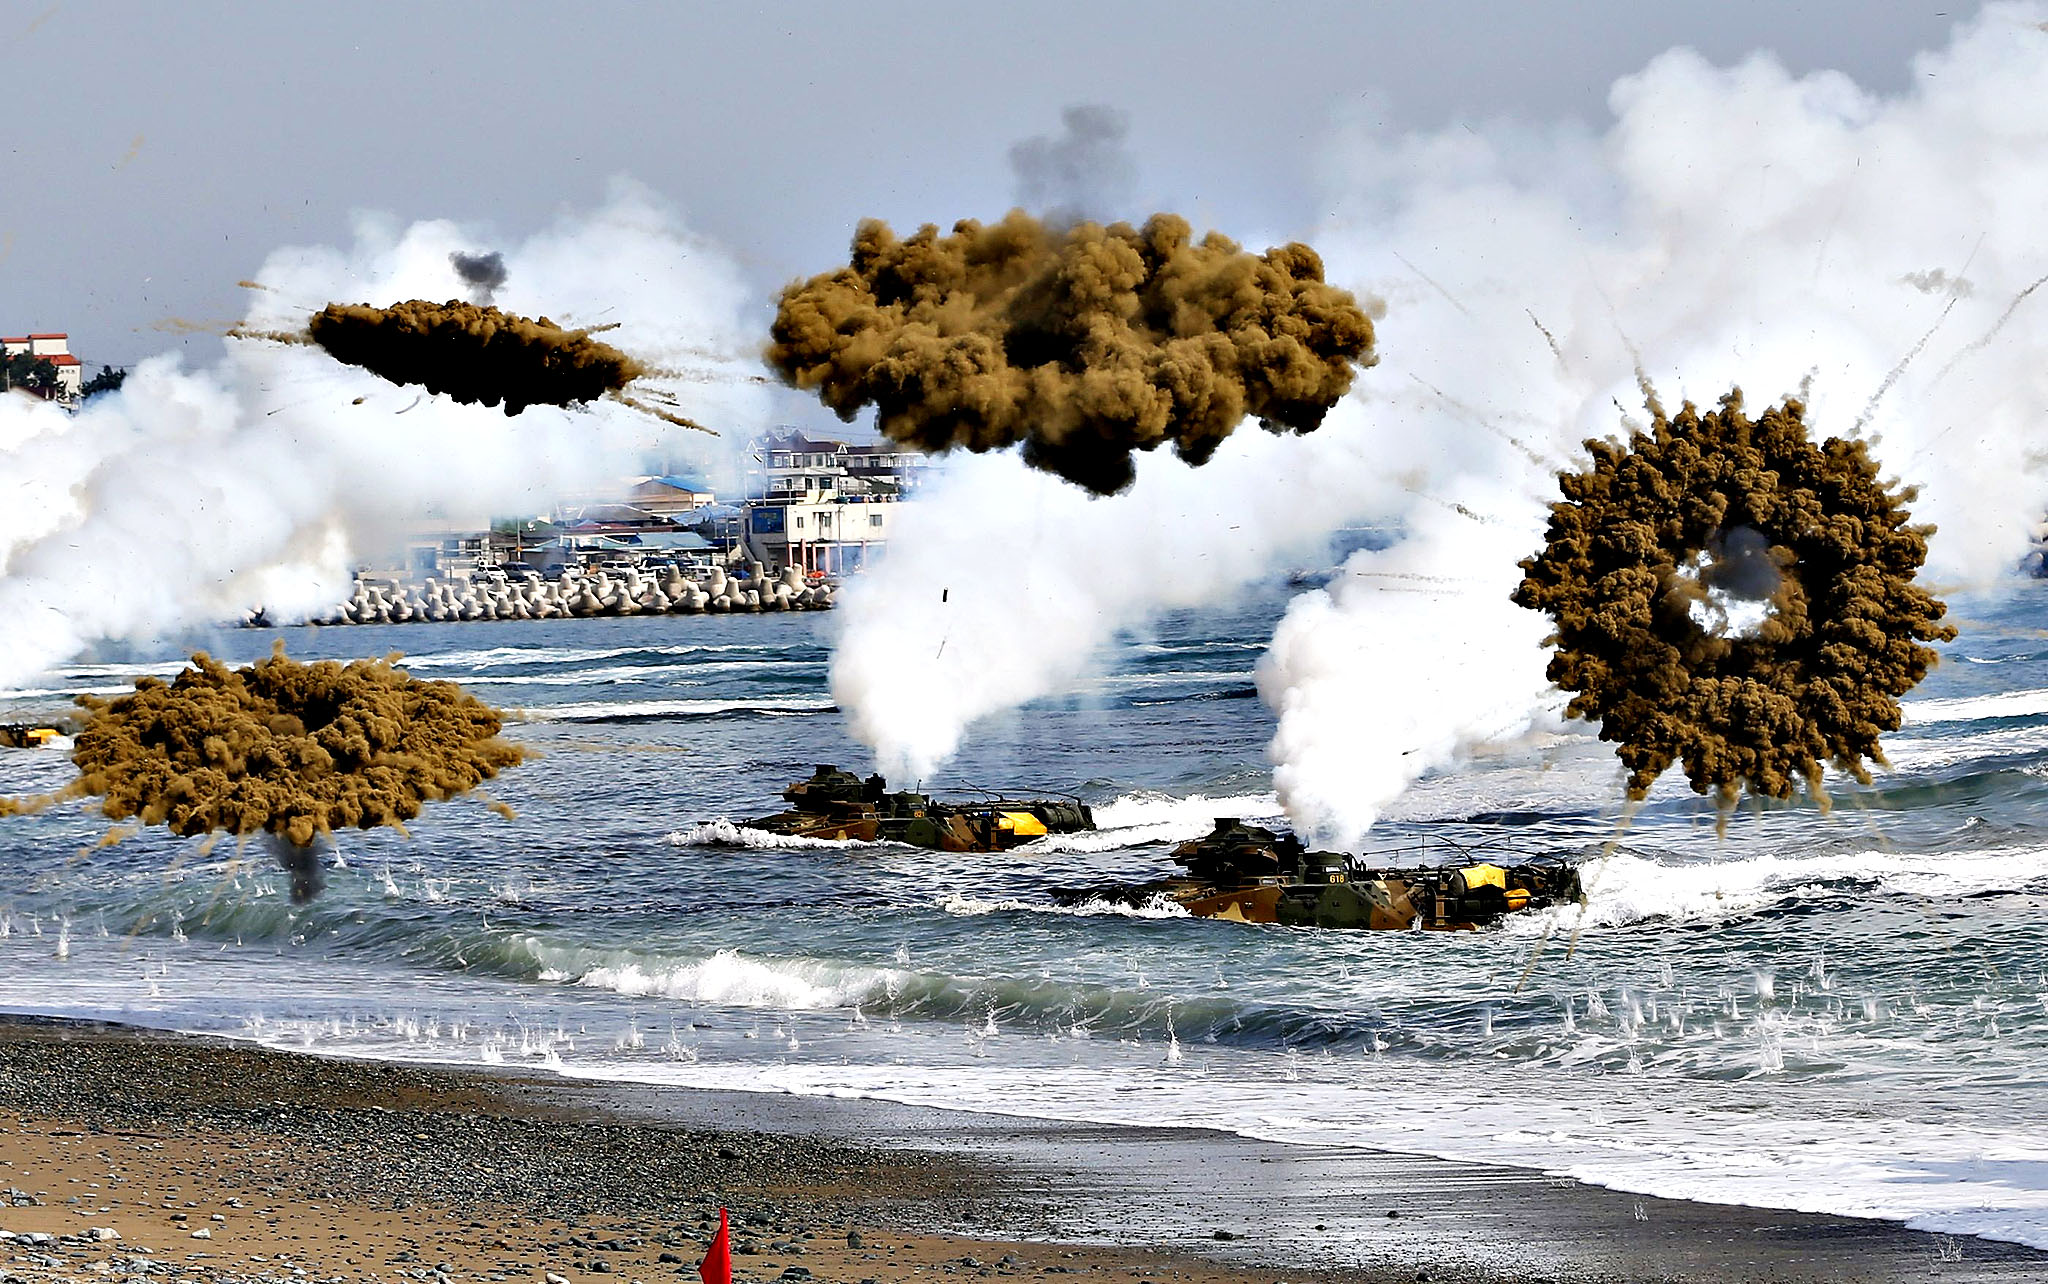 Amphibious assault vehicles of the South Korean Marine Corps throw smoke bombs as they move to land on shore during a U.S.-South Korea joint landing operation drill in Pohang...Amphibious assault vehicles of the South Korean Marine Corps throw smoke bombs as they move to land on shore during a U.S.-South Korea joint landing operation drill in Pohang March 31, 2014. The drill is part of the two countries' annual military training called Foal Eagle, which began on February 24 and runs until April 18.  North Korea declared a no-sail warning on Monday for areas off its west coast near a disputed border with South Korea and has notified the South that it will conduct firing drills, a South Korean government official said. The warning comes amid heightened tensions surrounding the North after the U.N. Security Council condemned Pyongyang for its mid-range missile launches last week, just as the leaders of South Korea, Japan and the United States met to discuss the North's arms programme.